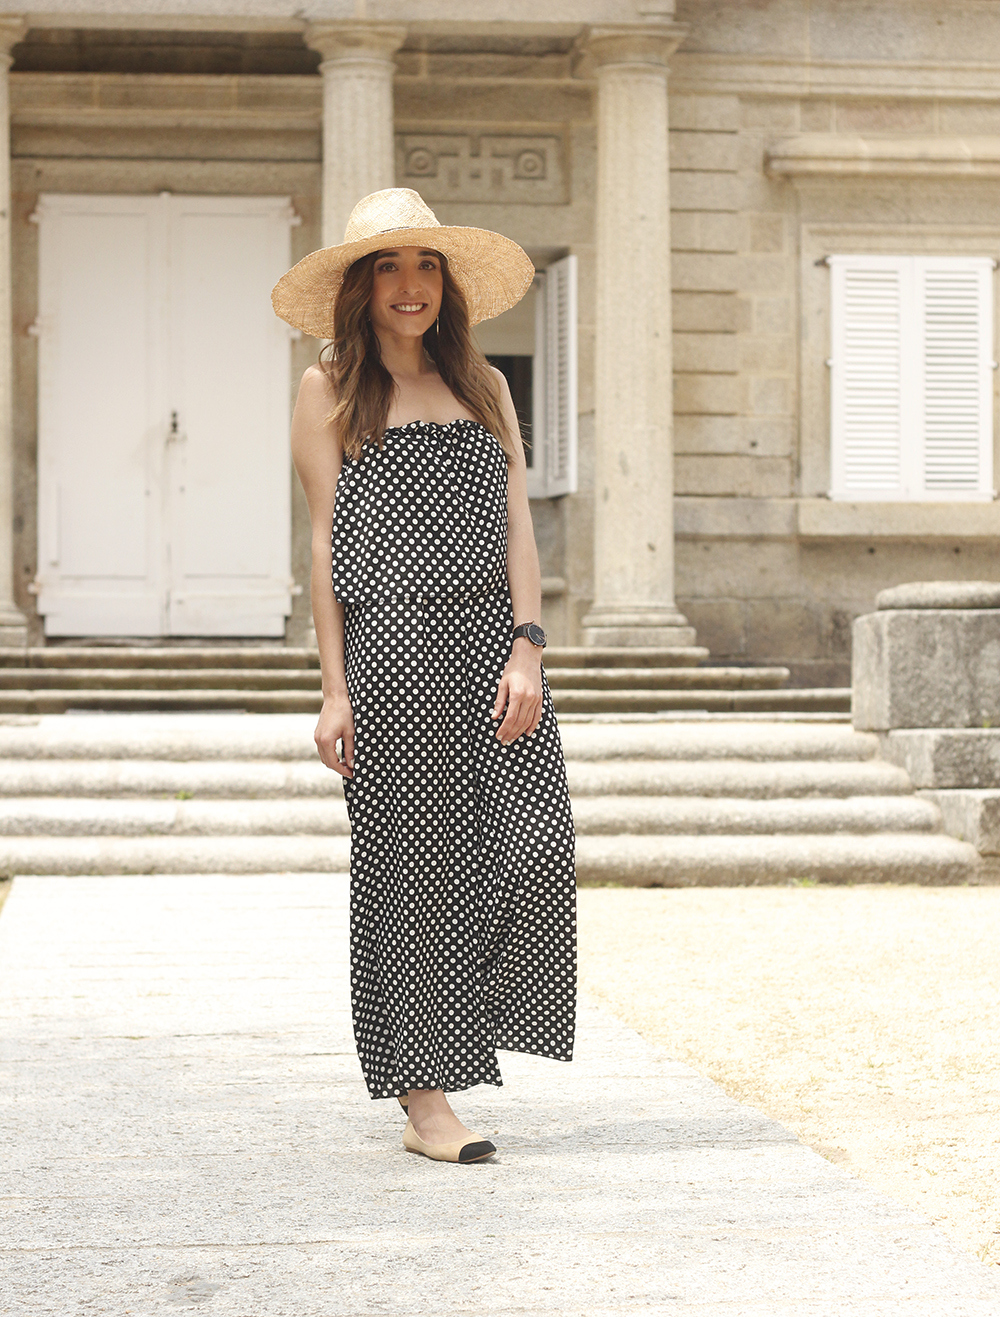 polka dot jumpsuit straw hat flat shoes street style spring outfit 201807